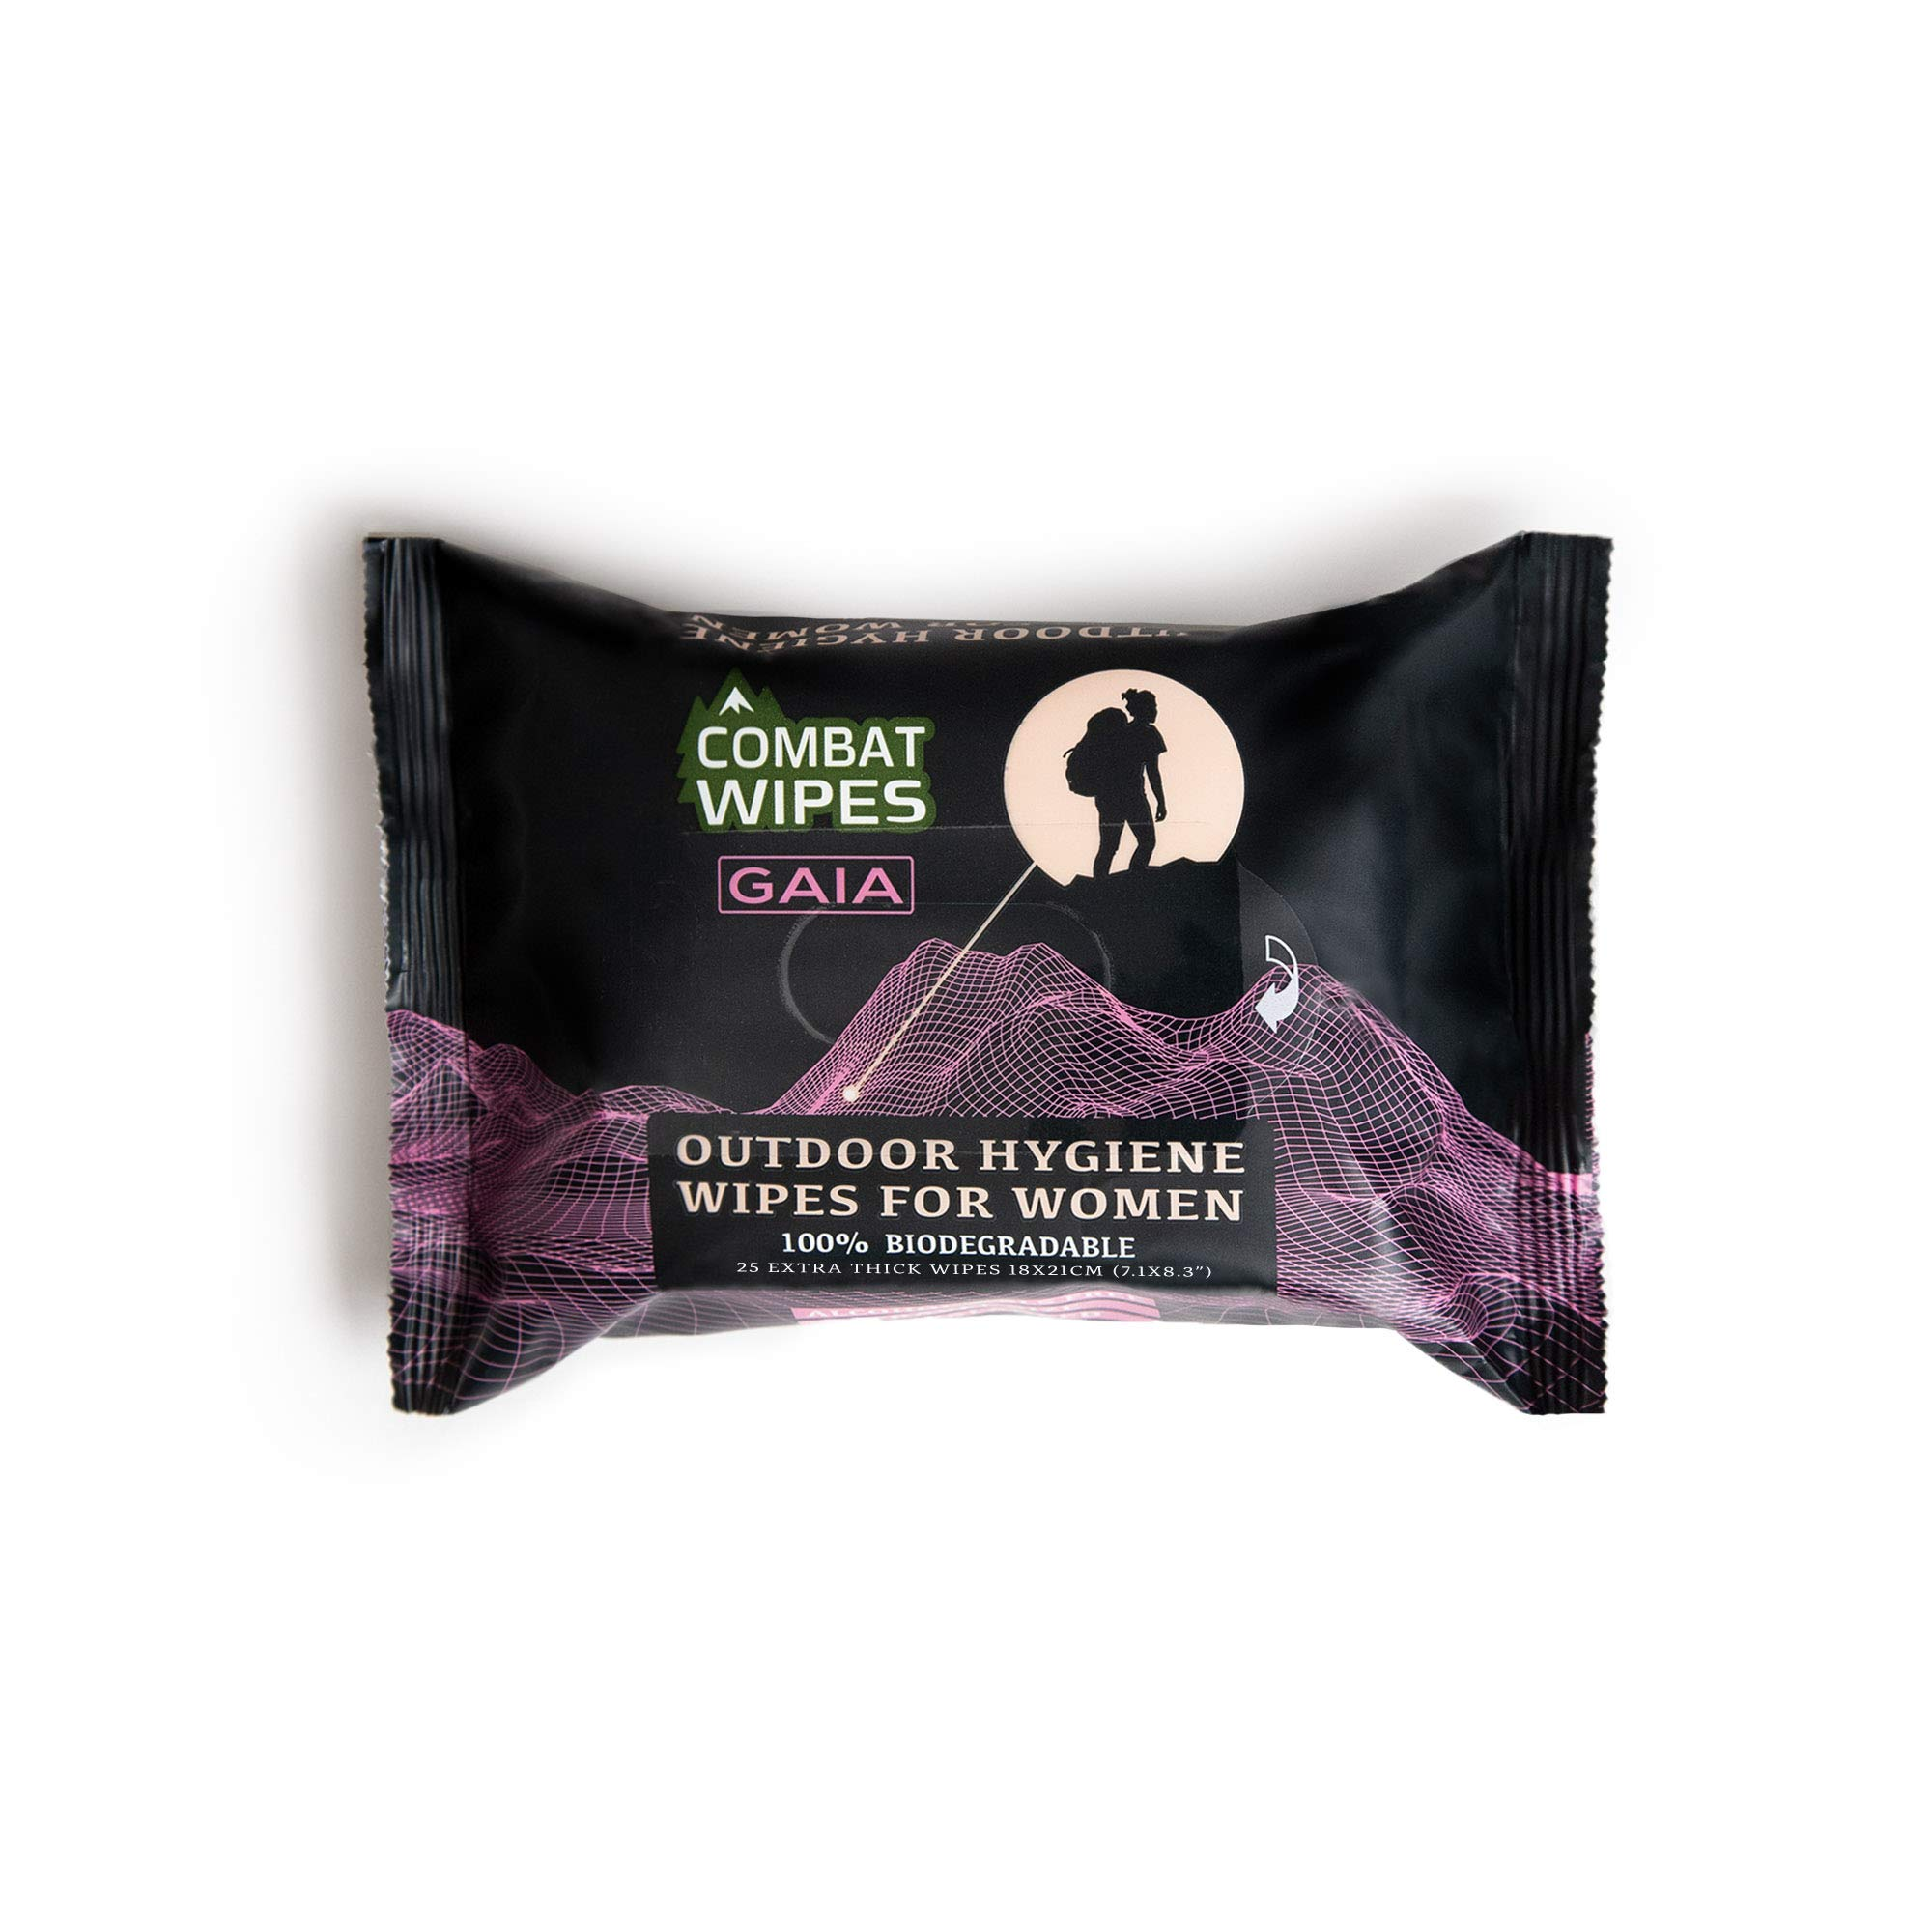 Combat Wipes GAIA | Feminine Hygiene Outdoor Wet Wipes | Extra Thick, Ultralight, Biodegradable, pH Balanced Body & Hand Cleansing Cloths for Women w/ Natural Aloe & Vitamin E  (25 Pack)